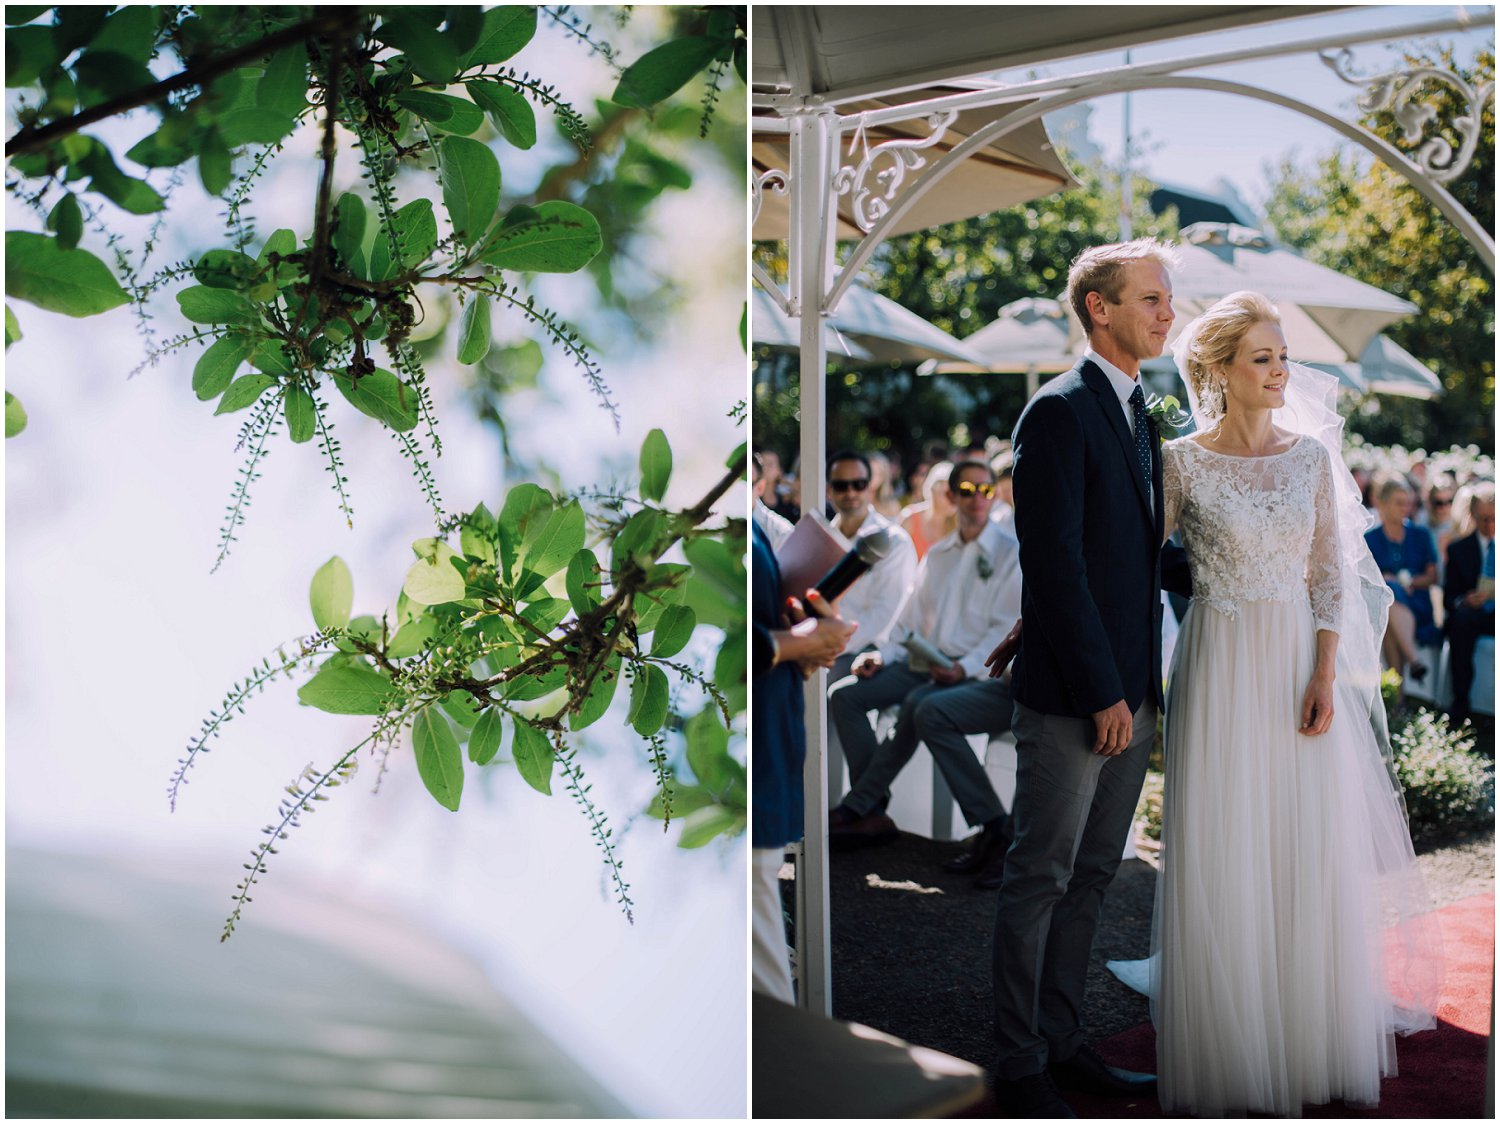 Top Wedding Photographer Cape Town South Africa Artistic Creative Documentary Wedding Photography Rue Kruger_0696.jpg